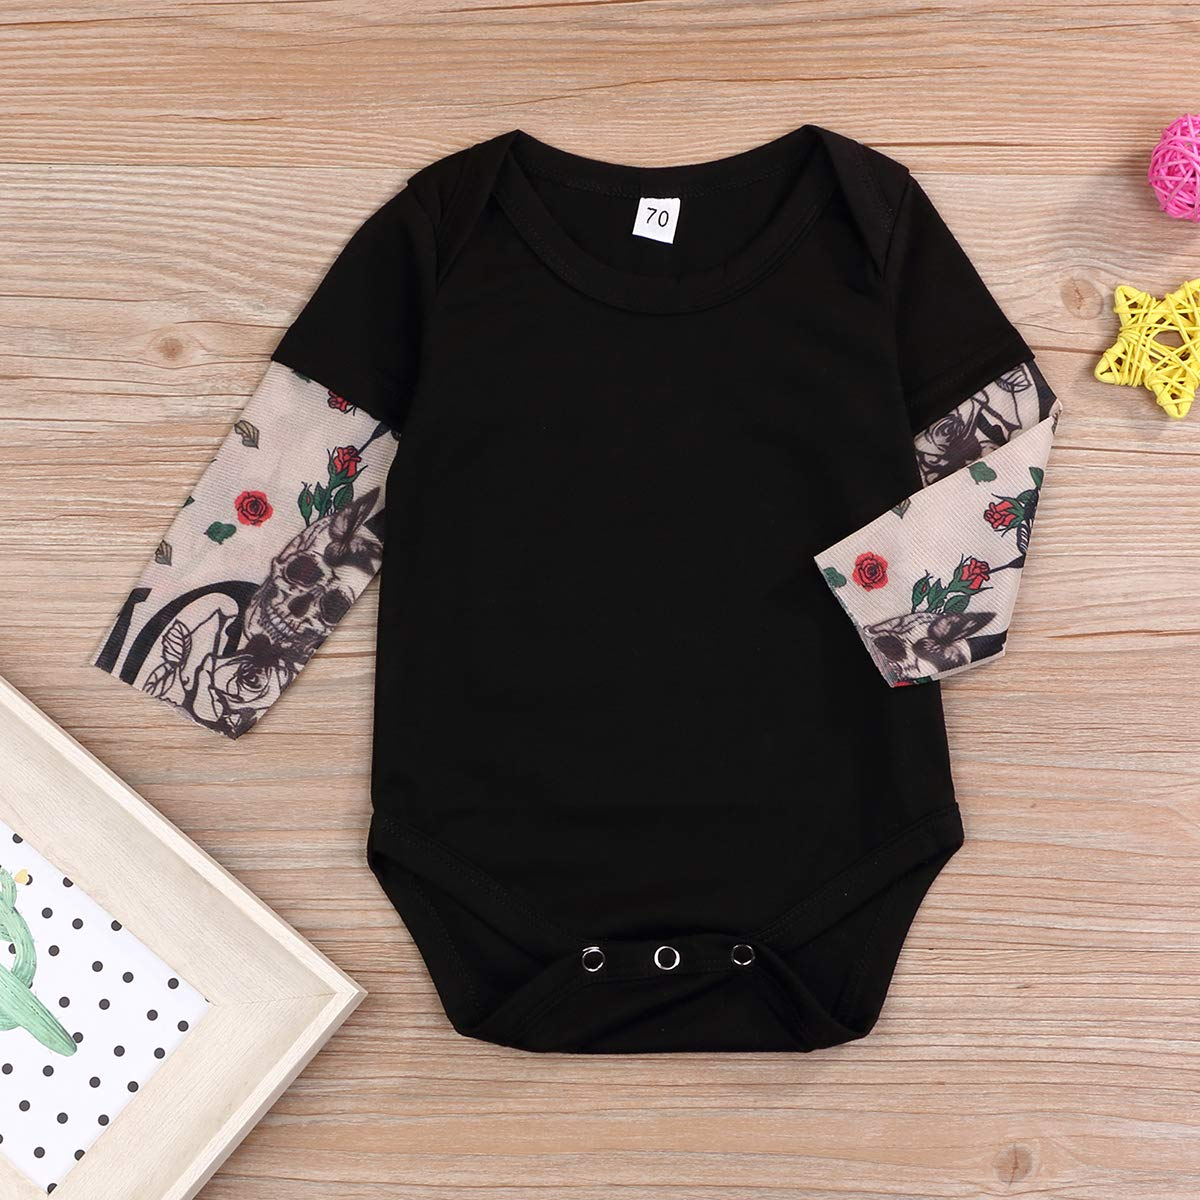 YOUNGER TREE Infant Baby Boys Girls Romper Tattoo Print Long Sleeve Jumpsuit Bodysuit One-Piece 0-24 Months